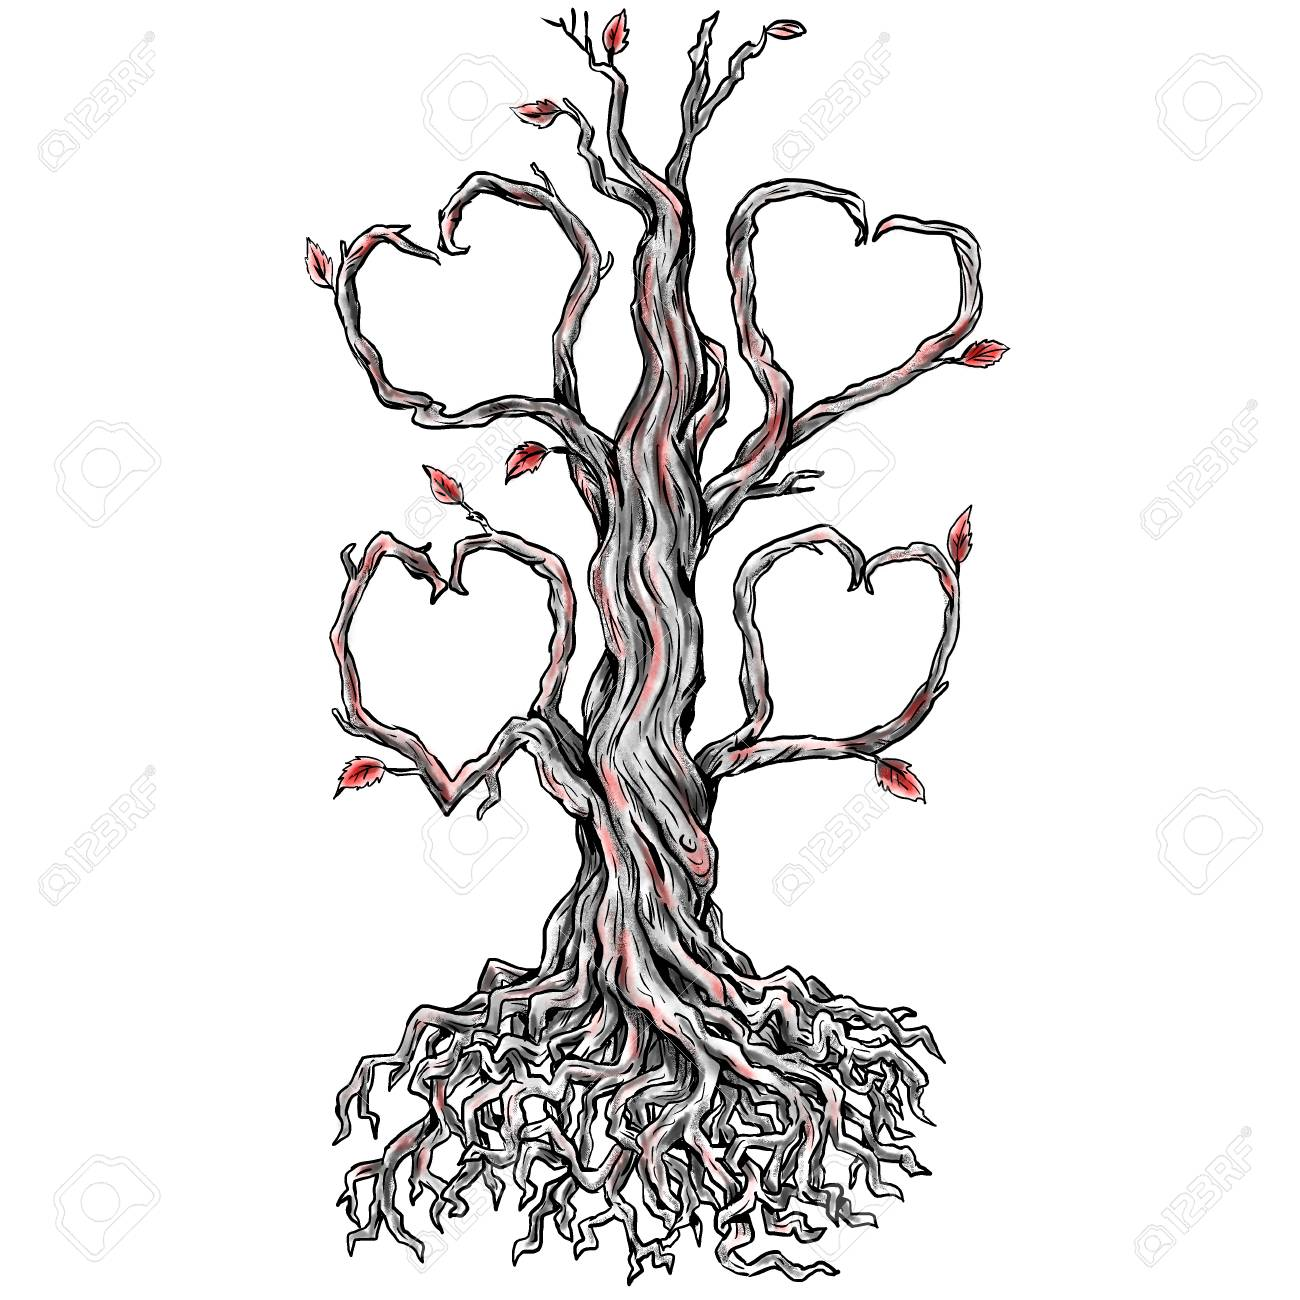 1300x1300 Tattoo Style Illustration Of A Twisted Oak Tree Without Leaves